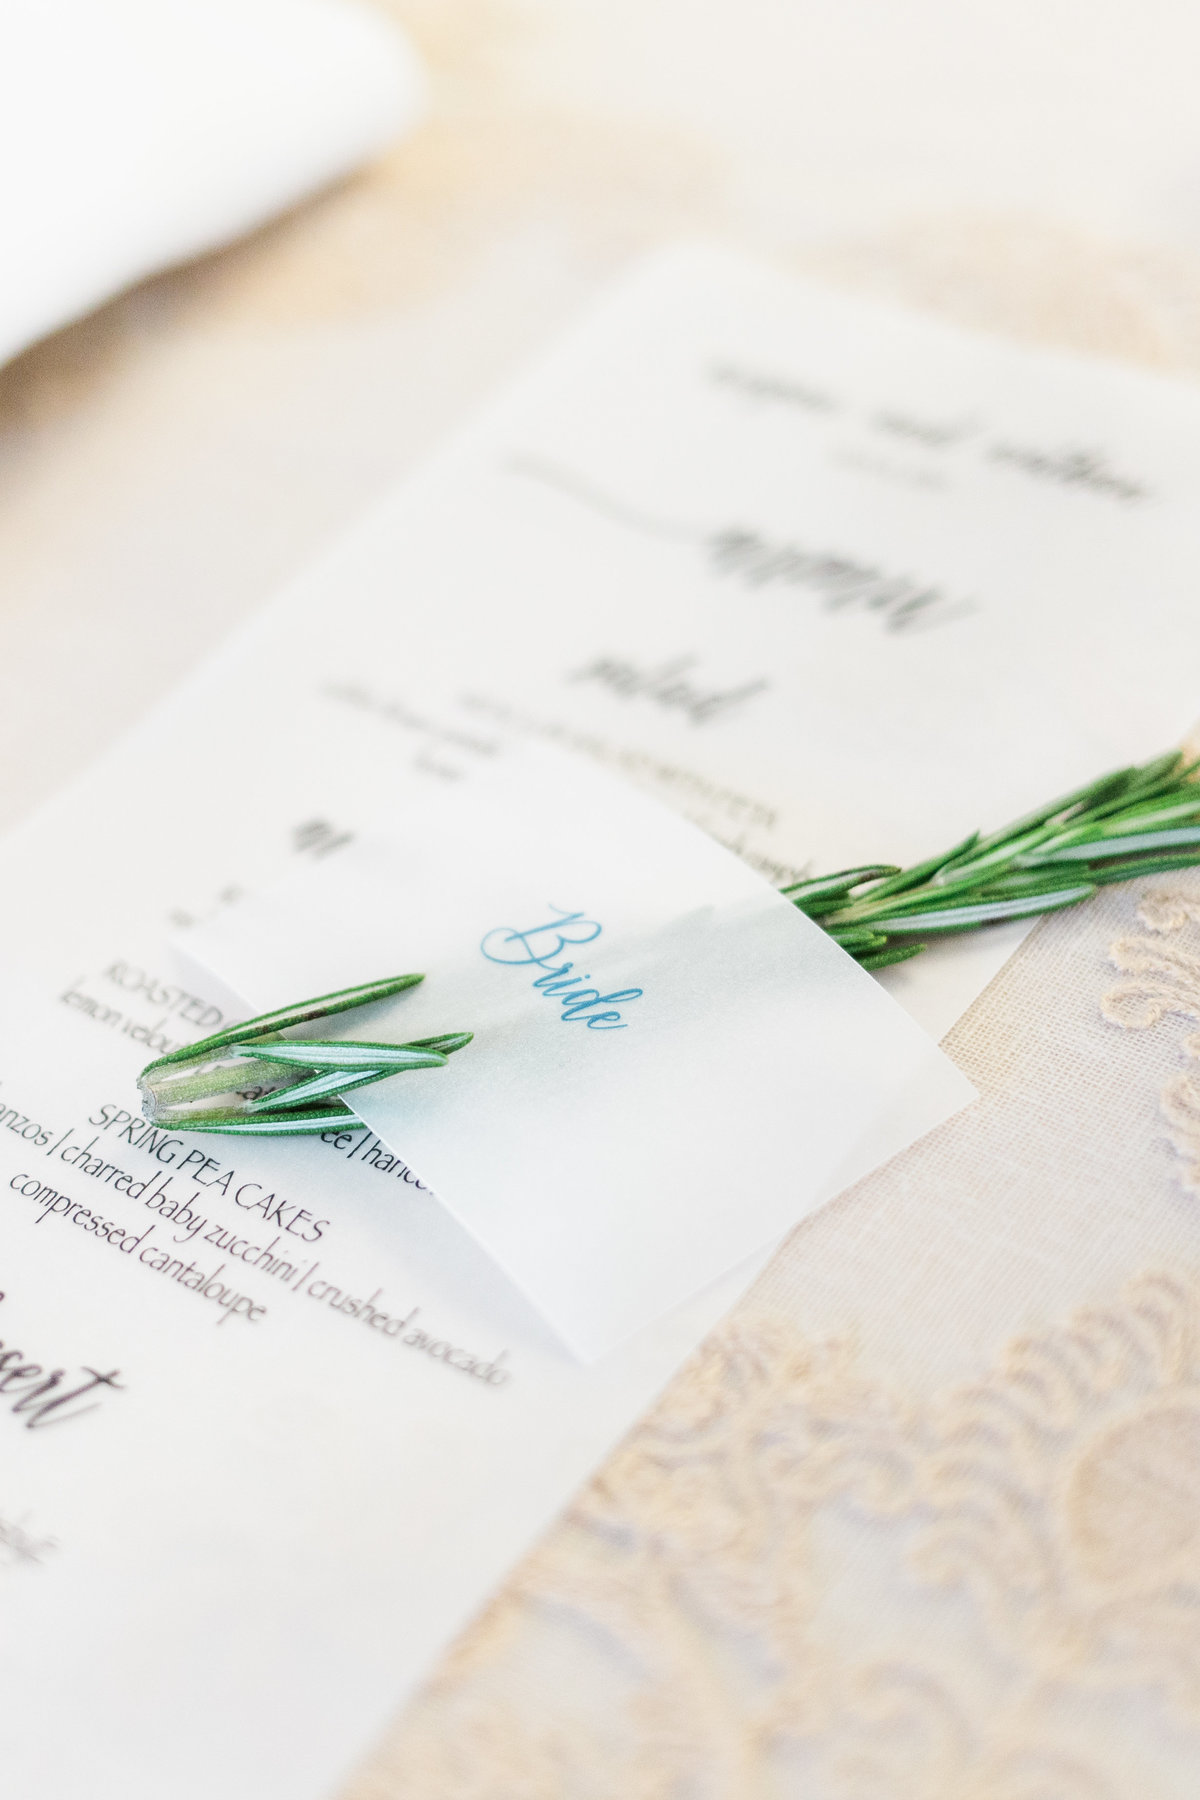 lucklovephotographywashingtondcweddingphotographerwoodlawnweddingmegannatereceptiondetailsintroductions_0008